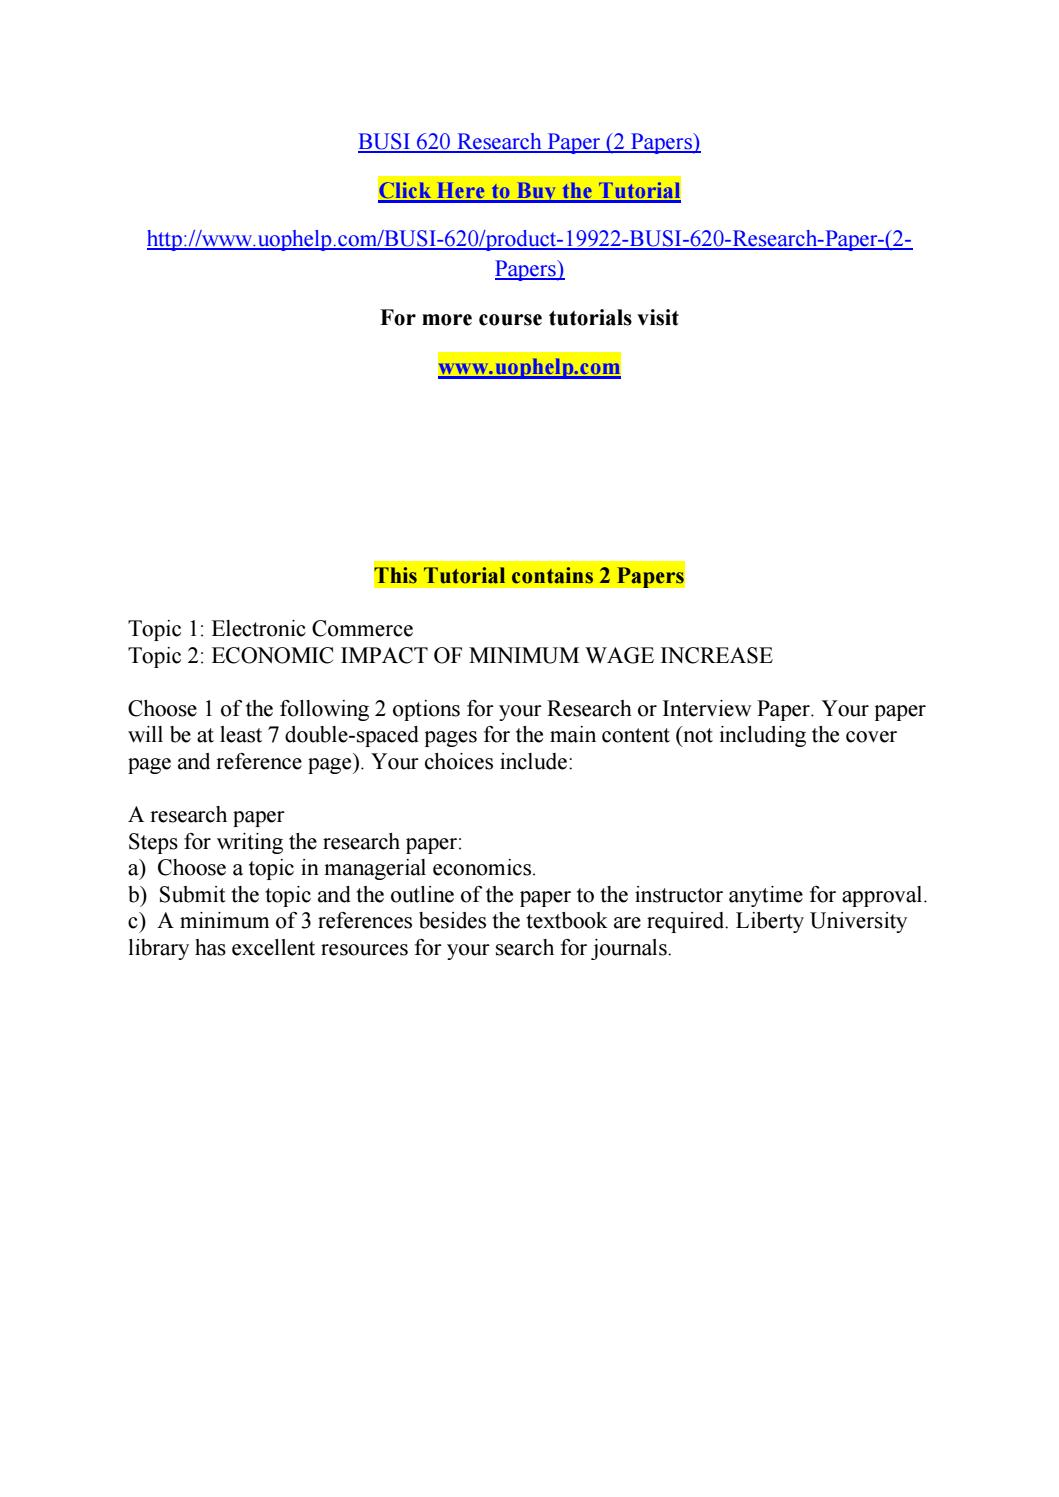 020 Liberty University Research Paper Outline Page 1 Frightening Full